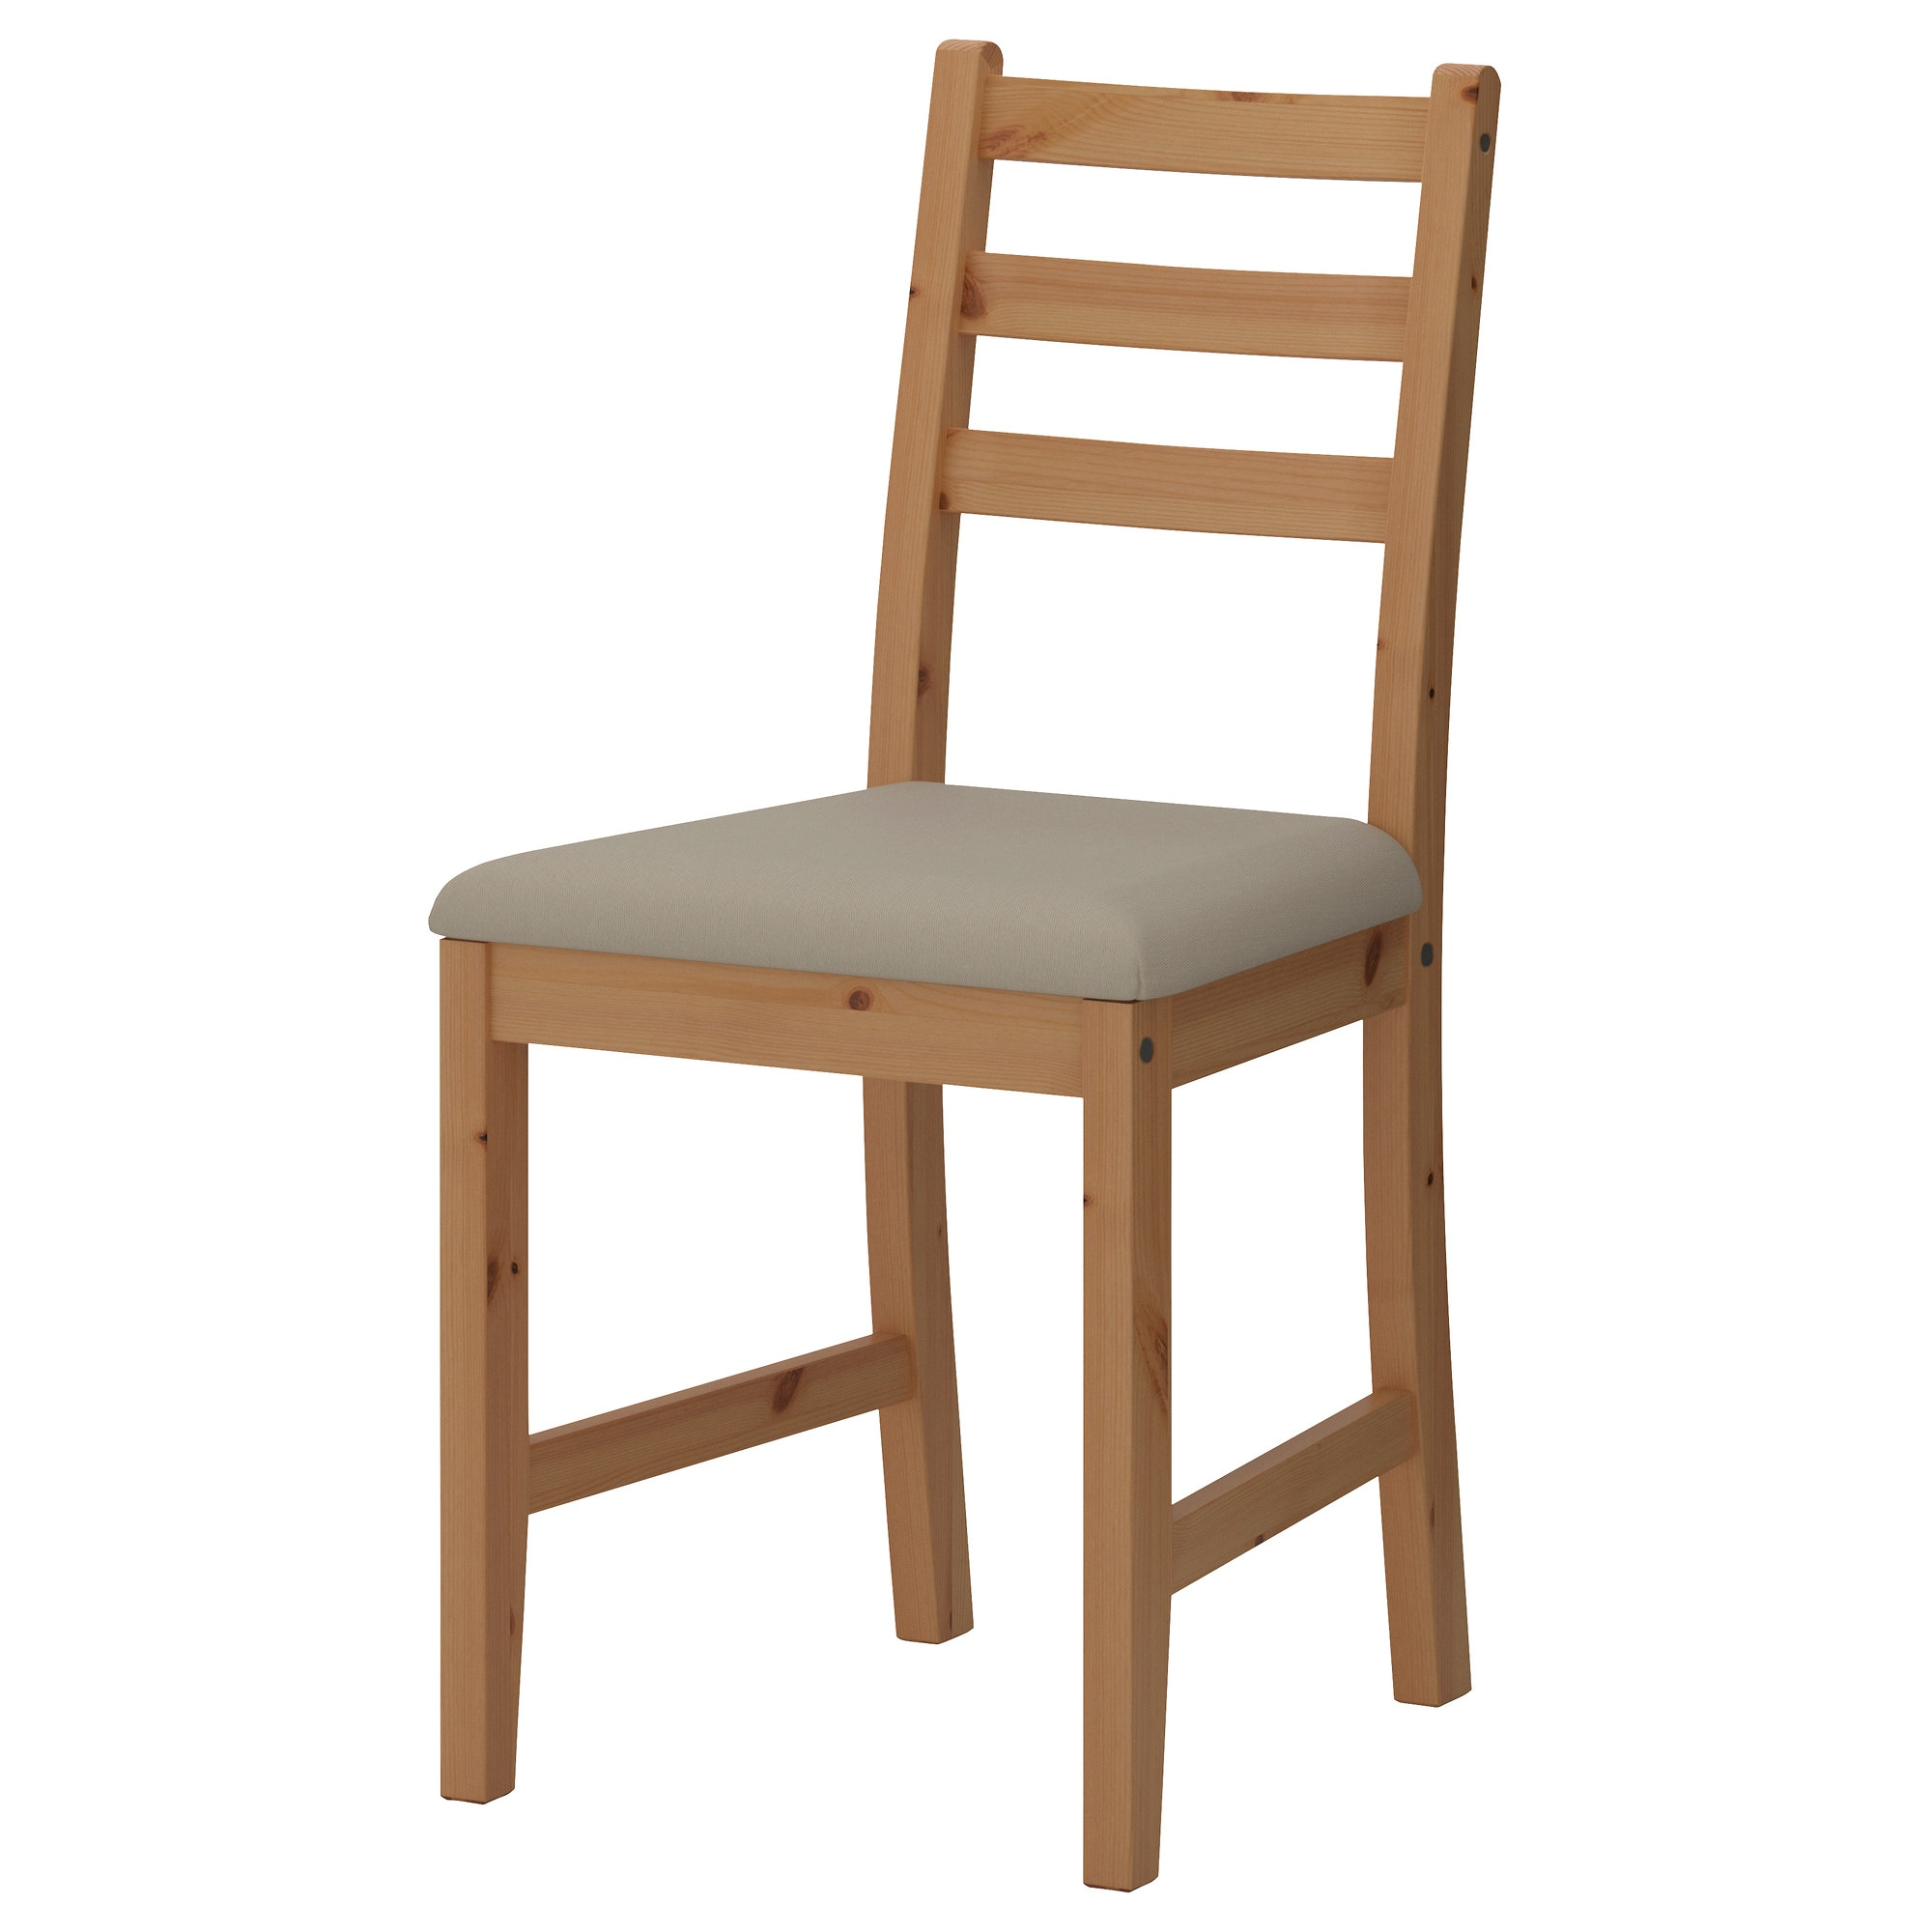 LERHAMN Chair - IKEA